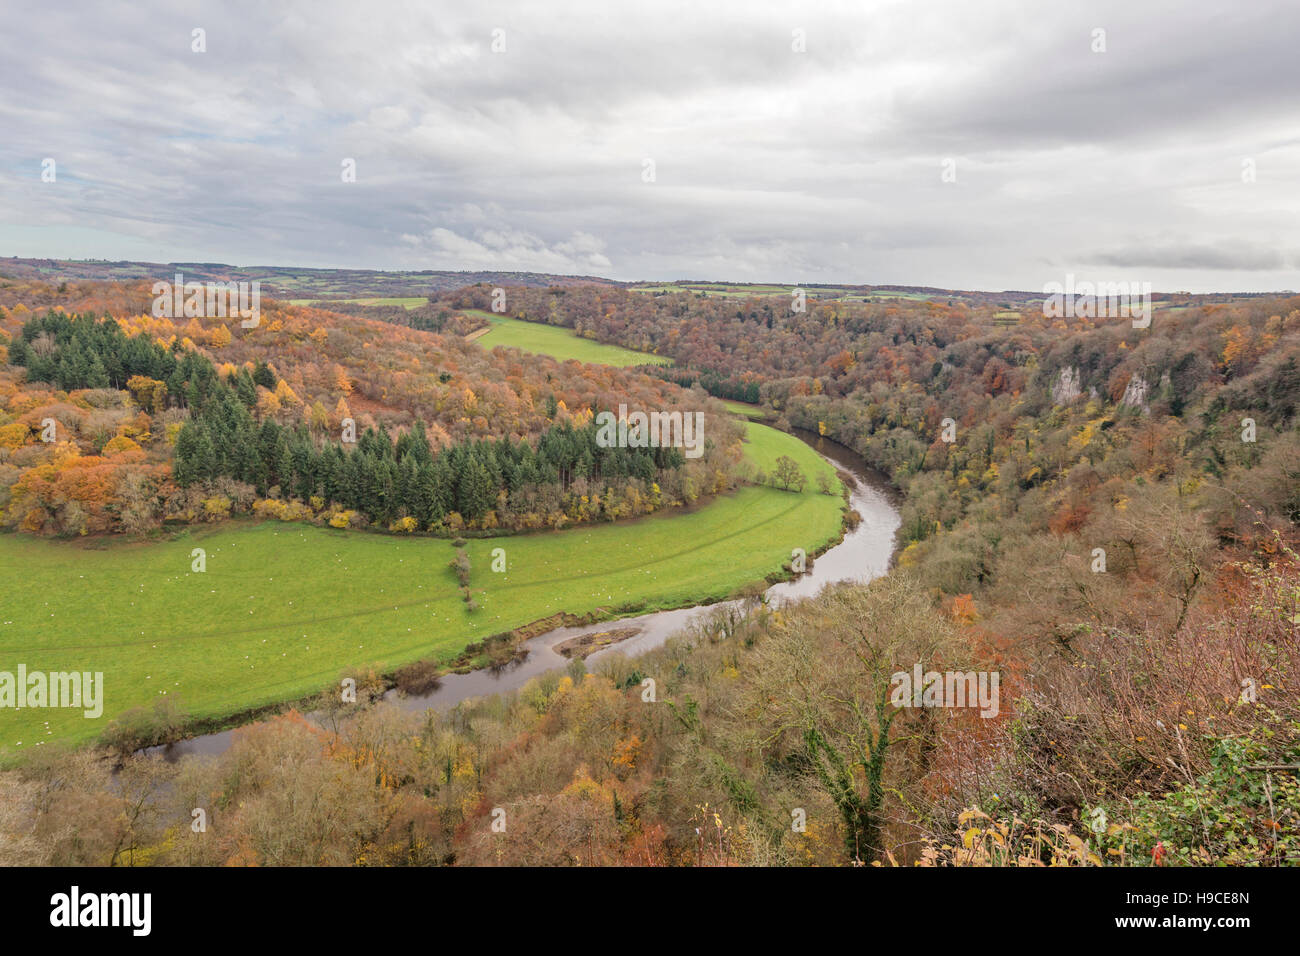 Autumn over the River Wye from Symonds Yat Rock, Gloucestershire, England, UK - Stock Image